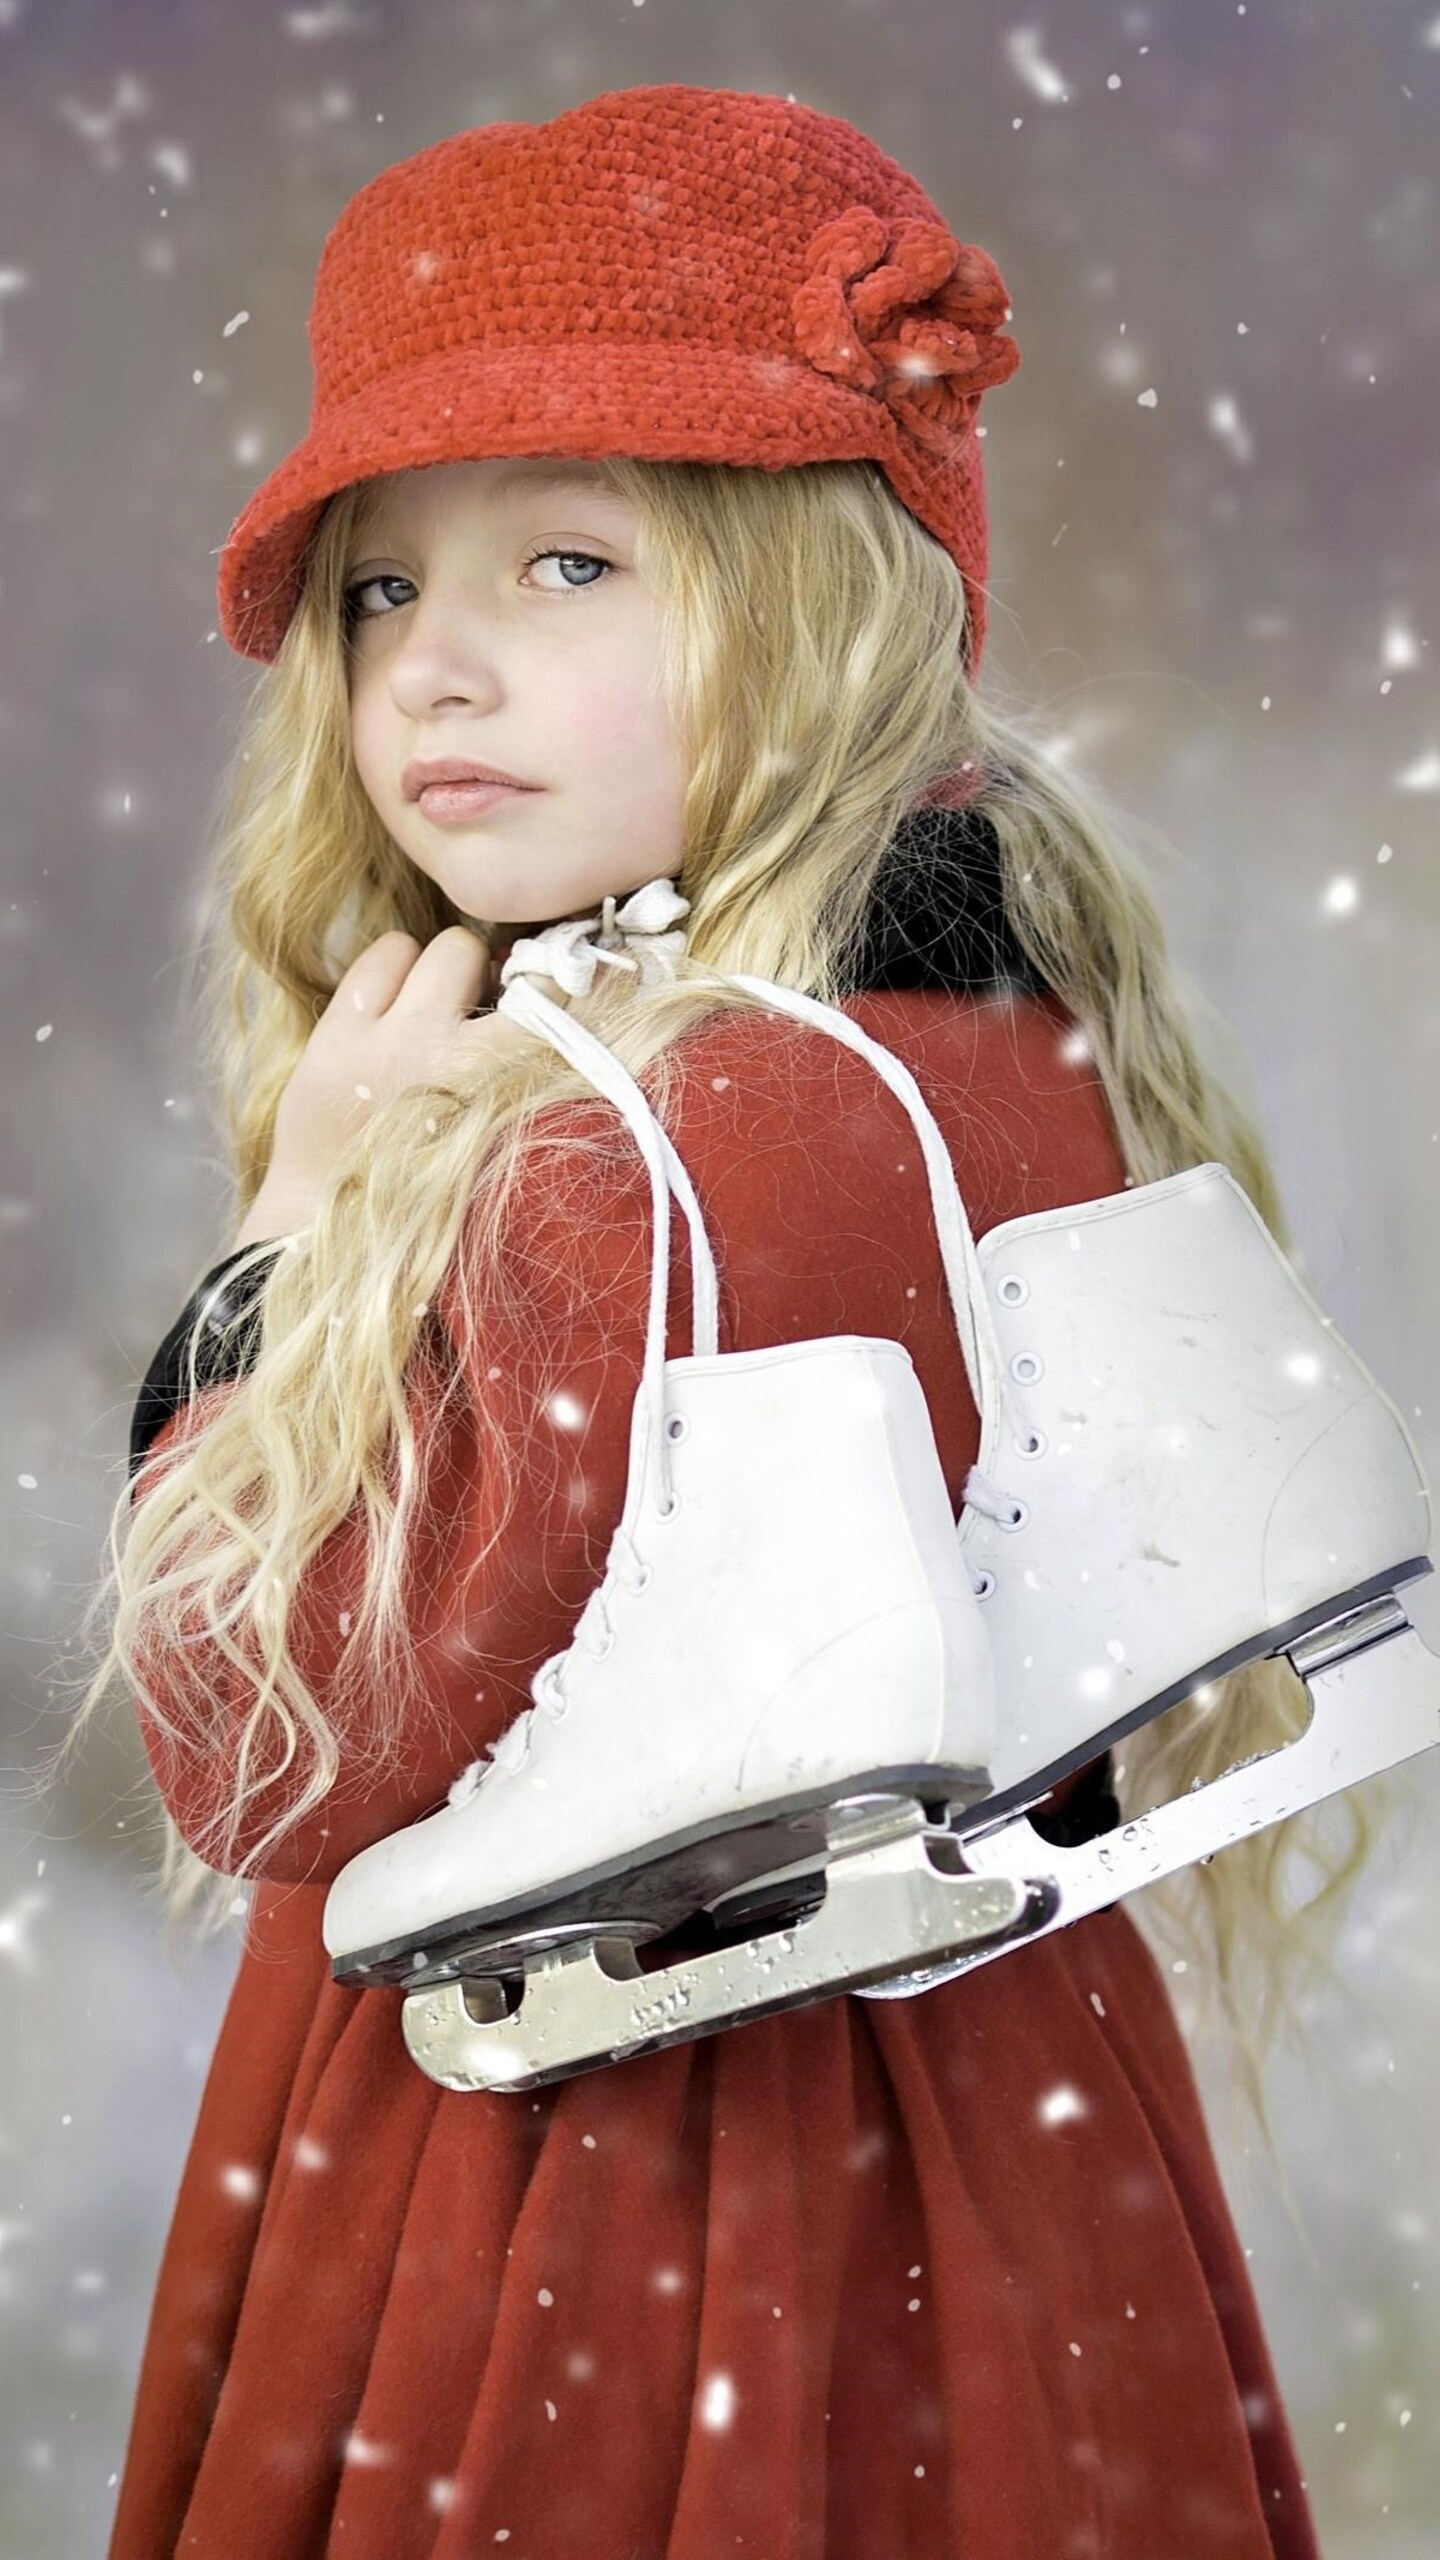 cute-girl-ice-skates.jpg